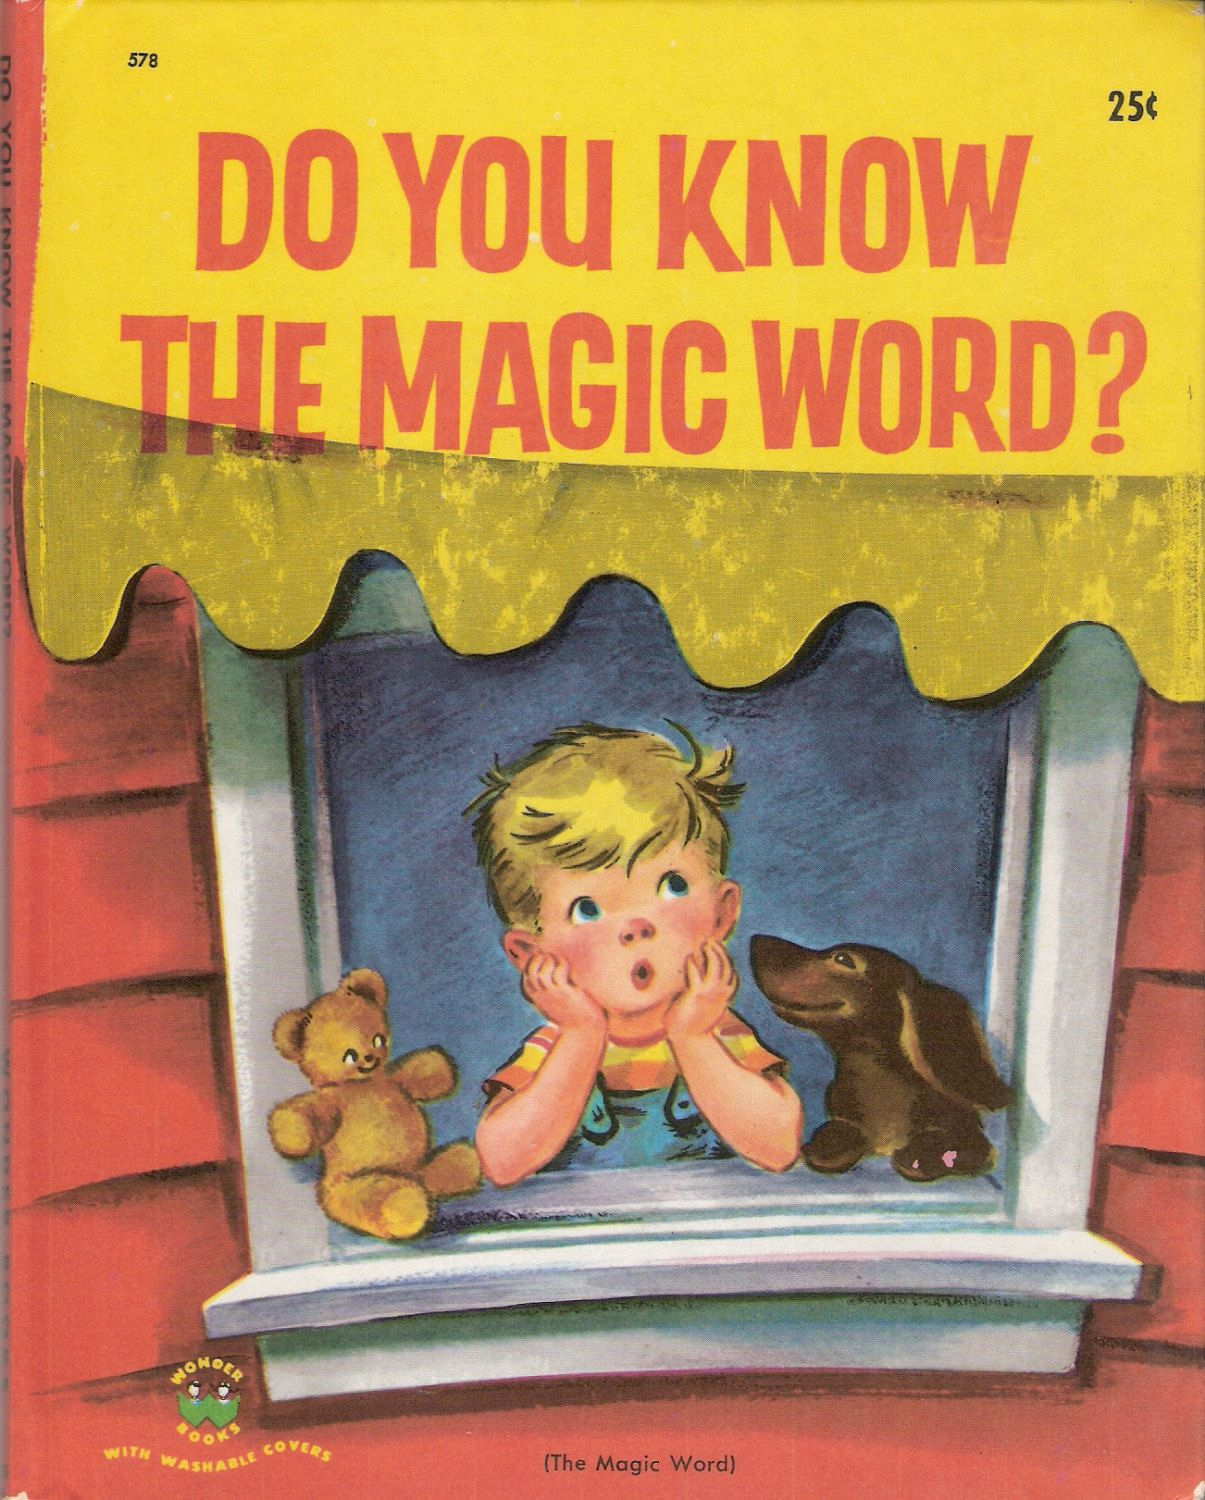 'Do You Know The Magic Word?', a Wonder Book #578 by Charlotte Zolotow.  Illustrated by Eleanor Dart. Copyright 1952, by Wonder Books, Inc.